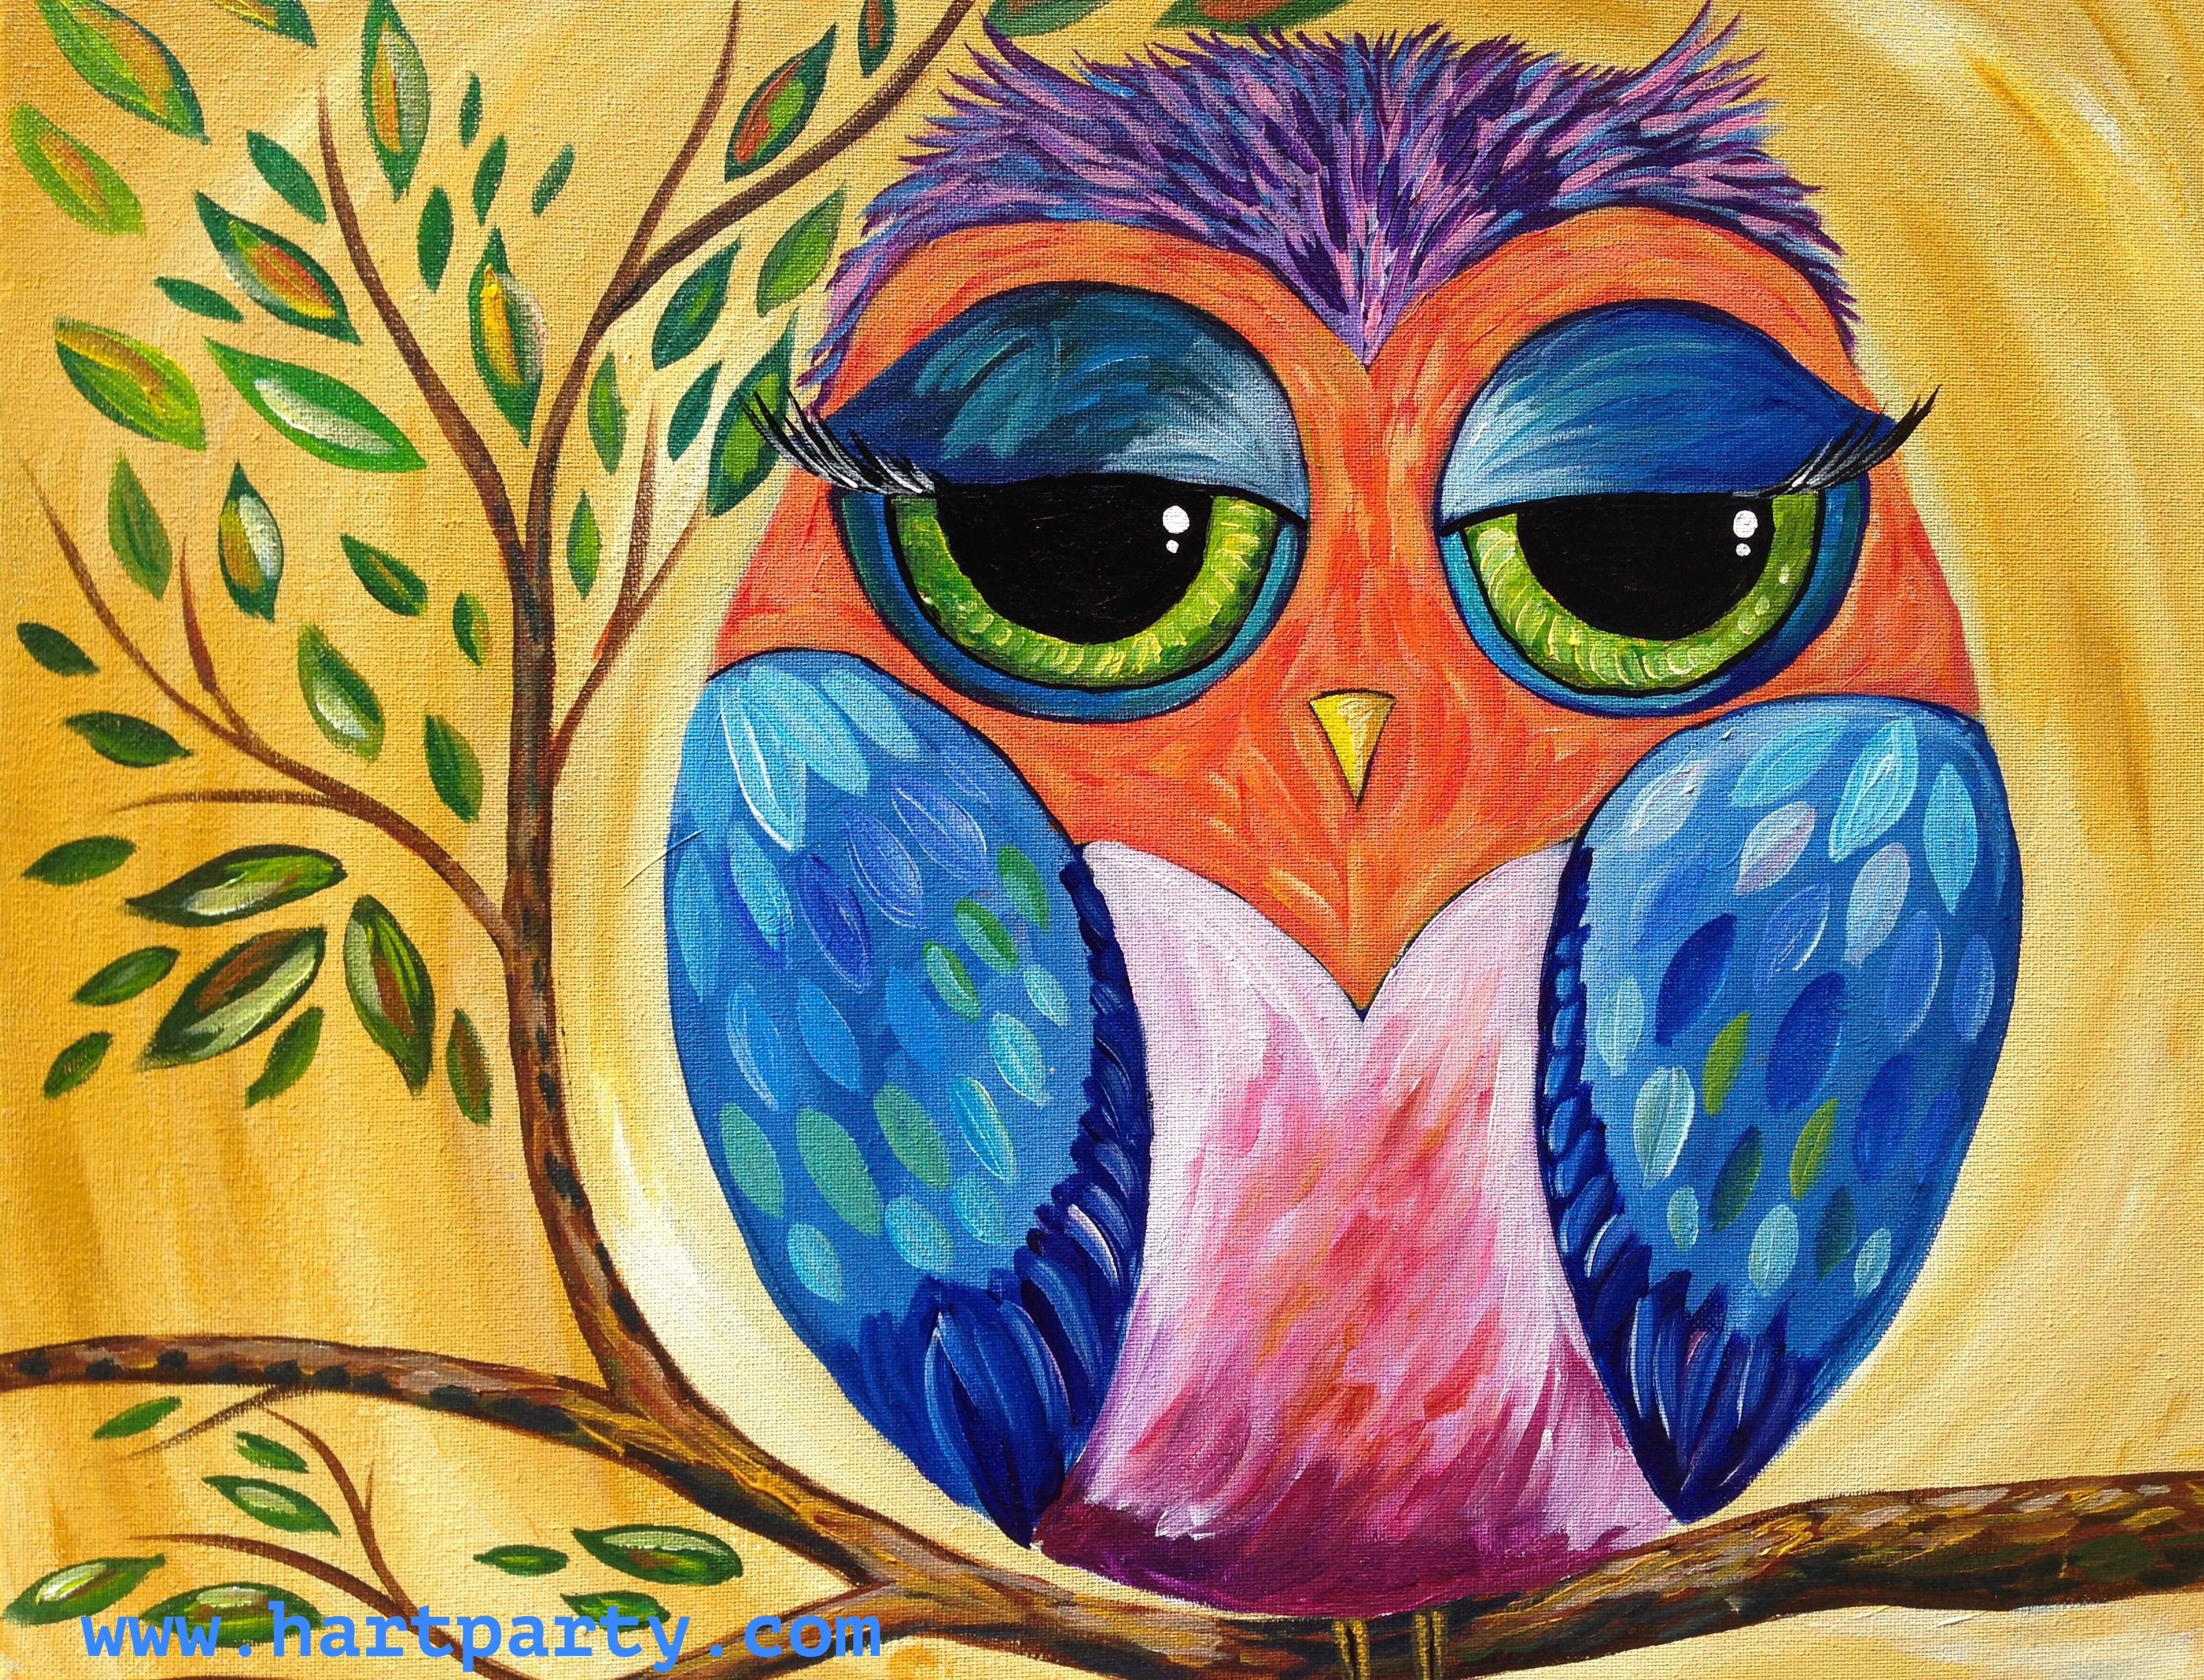 Colorful Pictures Of Owls Colorful Owl By Cinnamon Cooney The Art Sherpa As A Fully